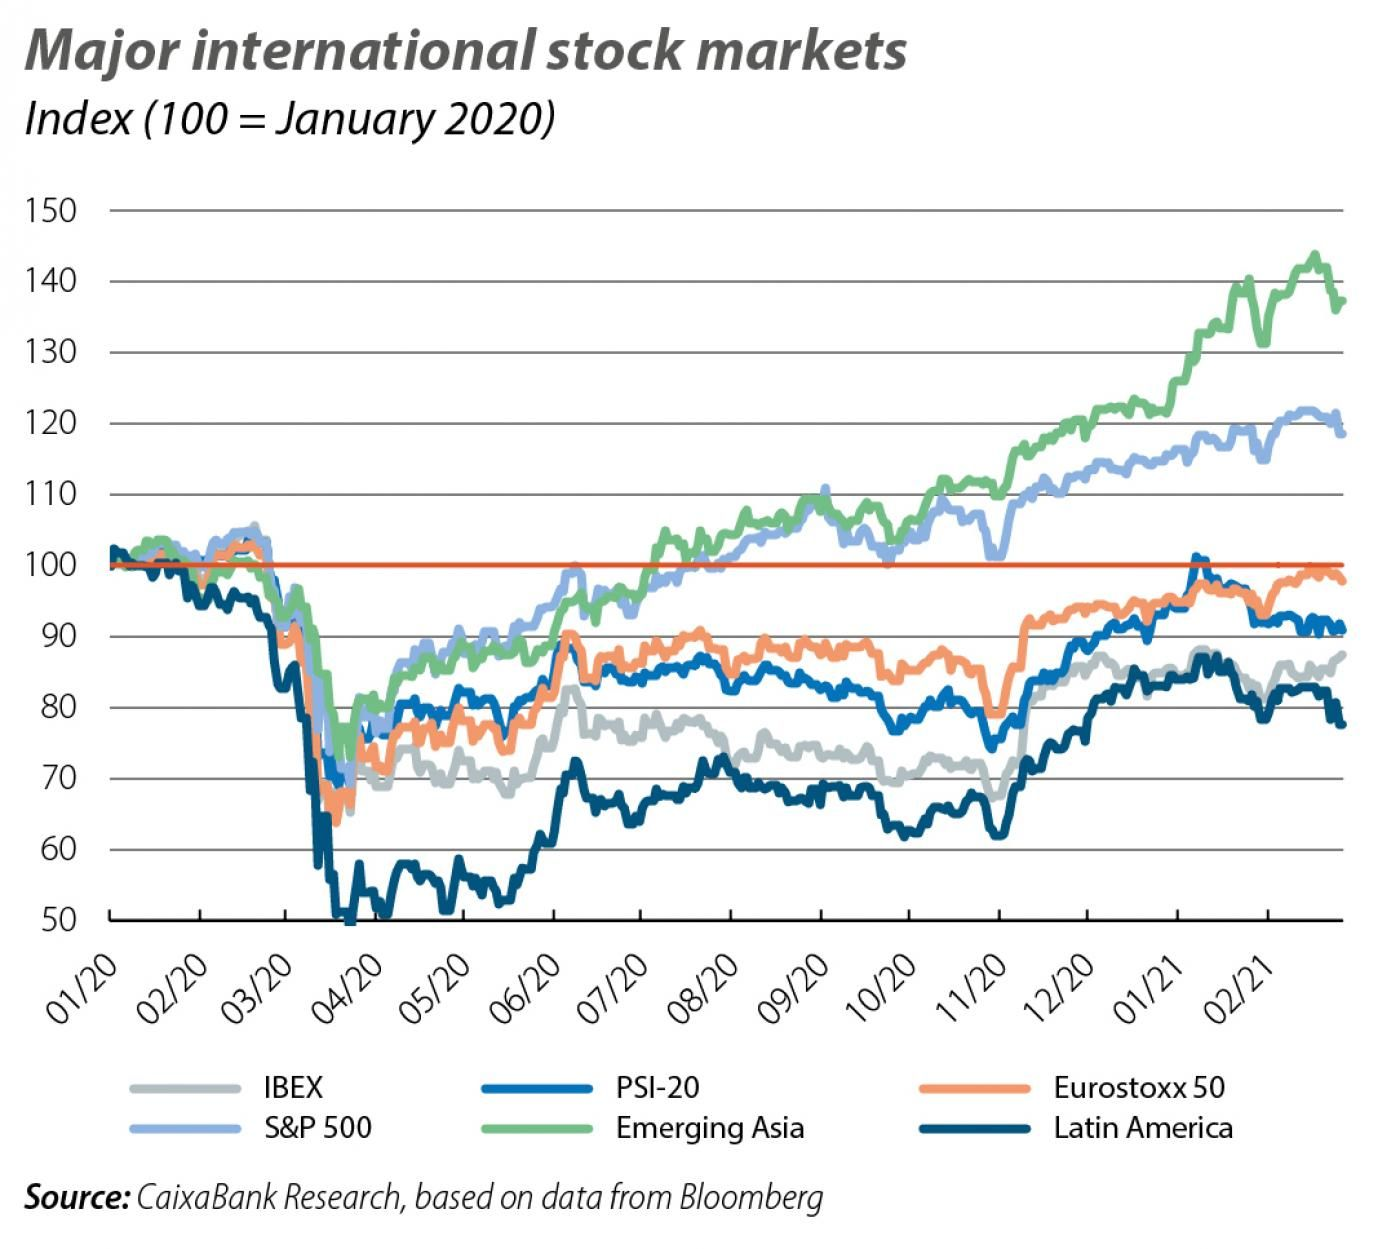 Major international stock markets